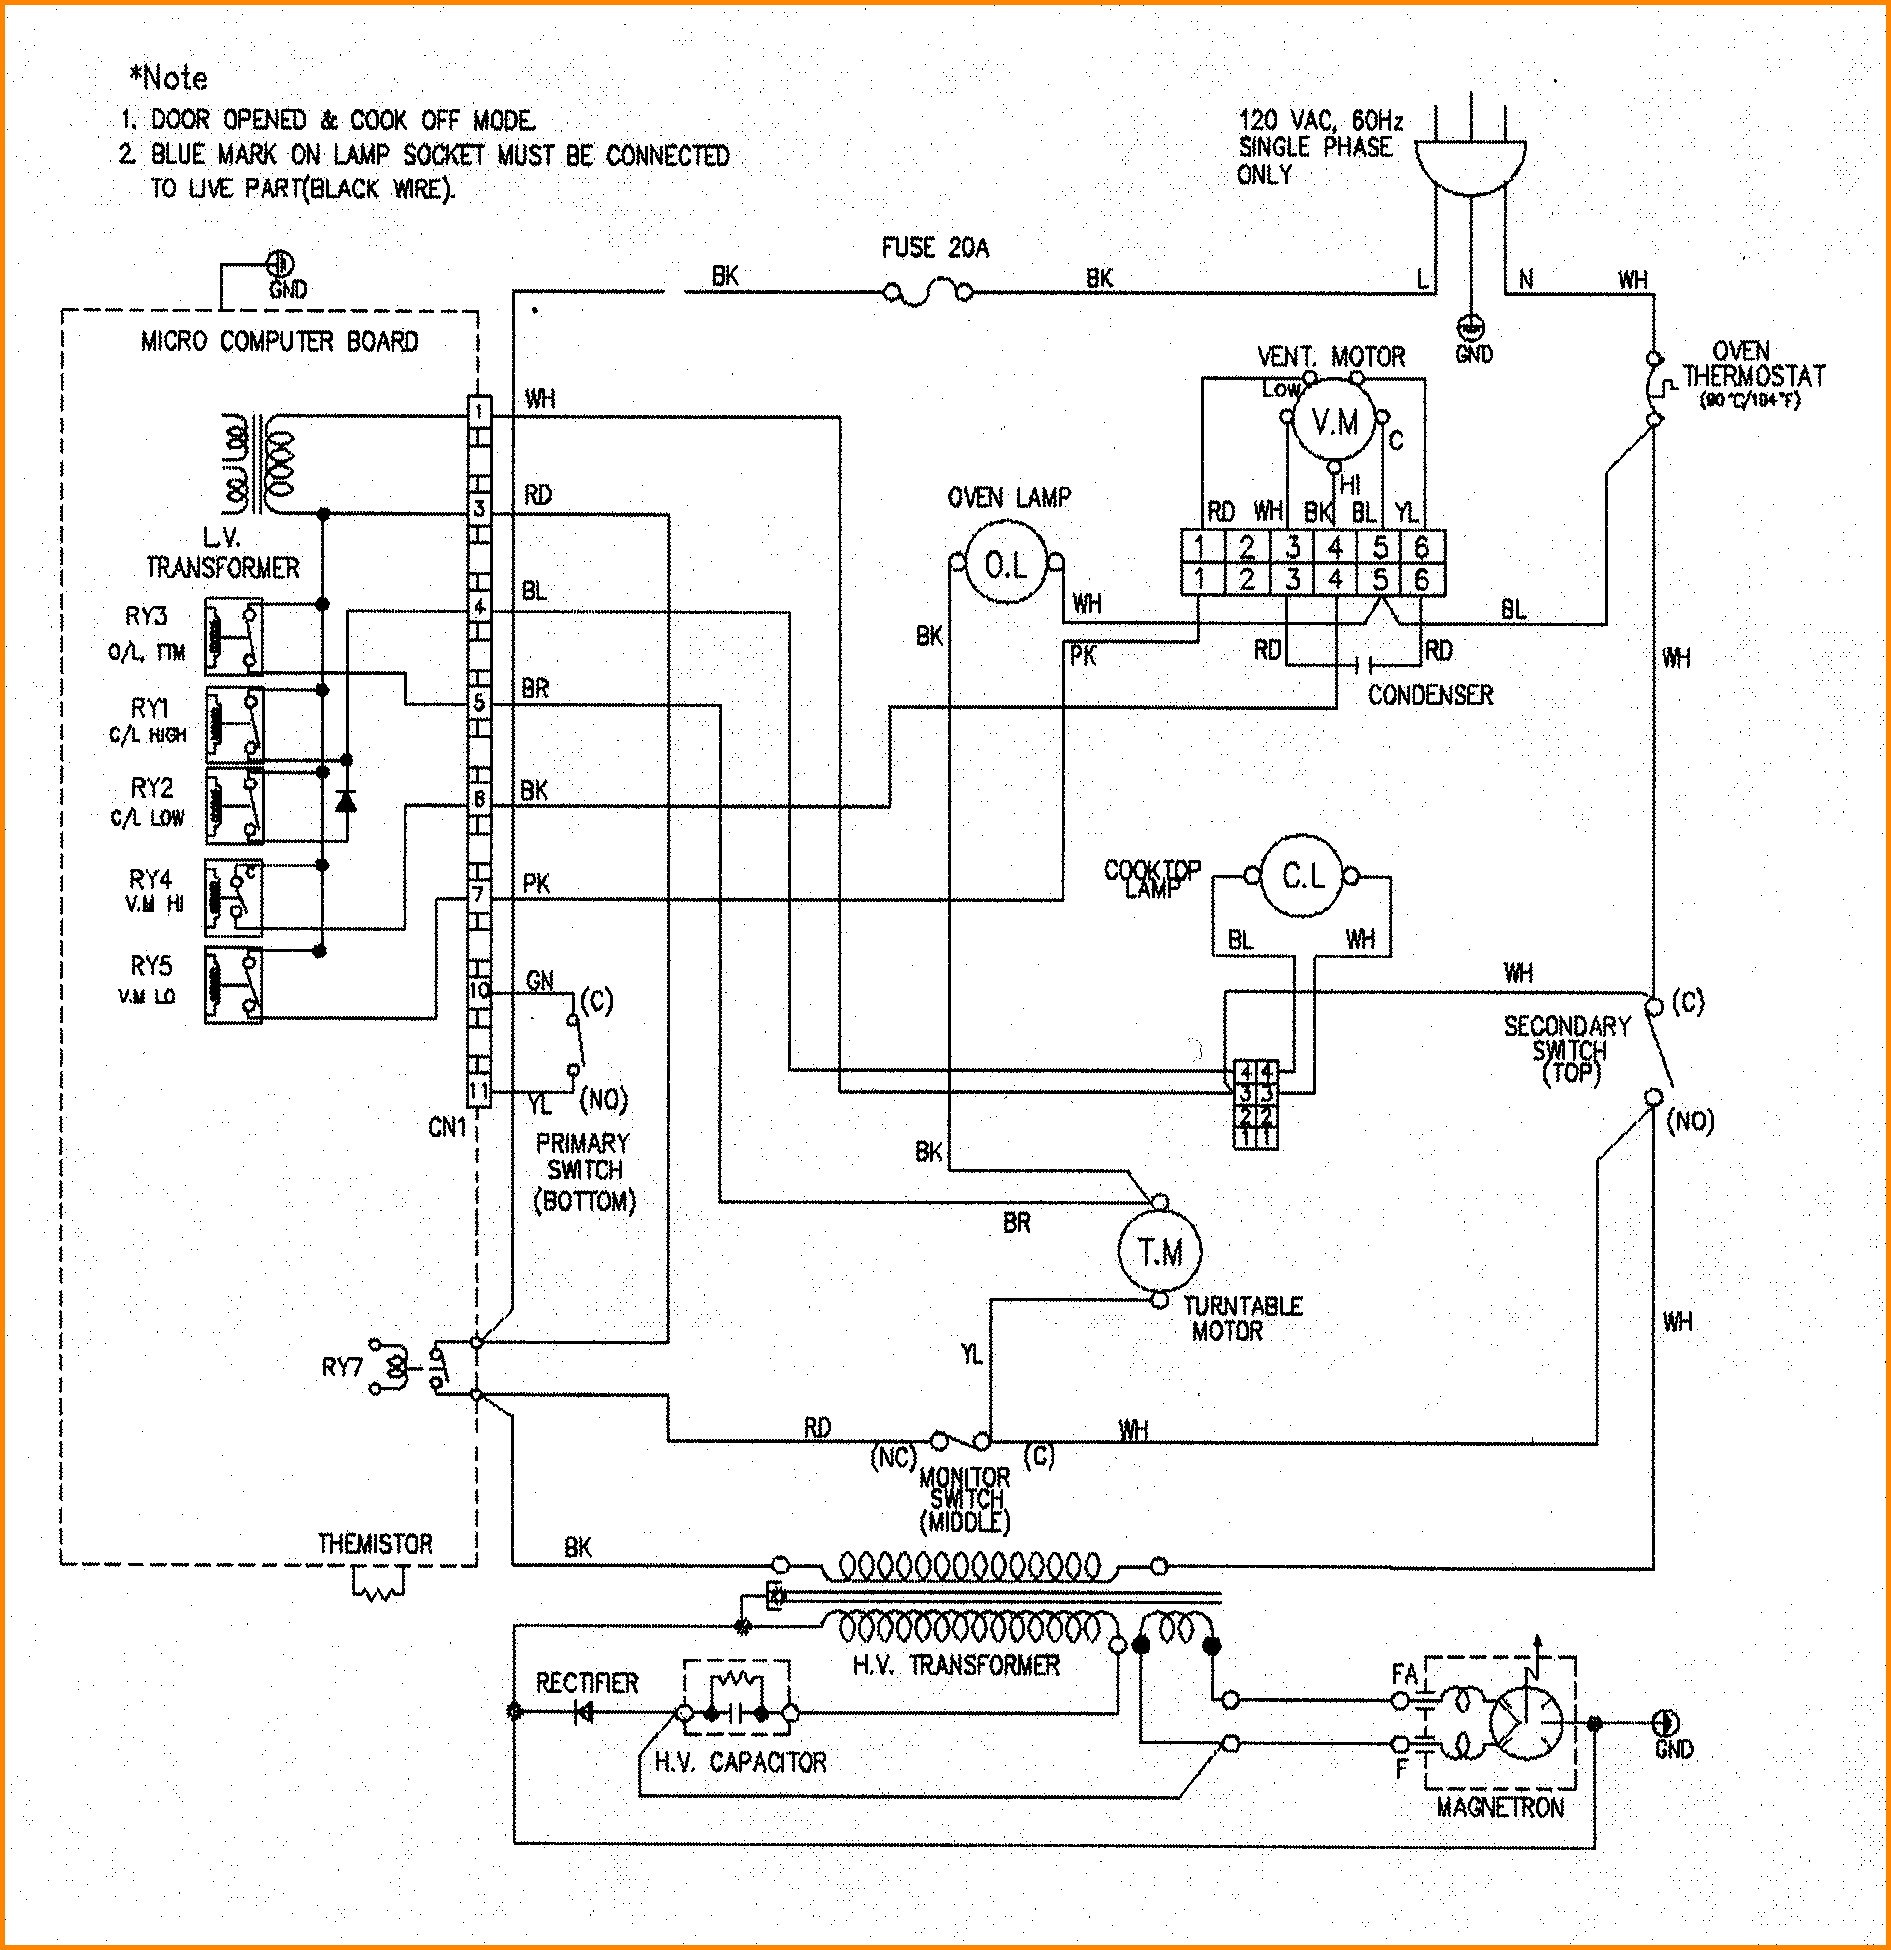 Ge Electric Clothes Dryer Wiring Diagram | Wiring Diagram on